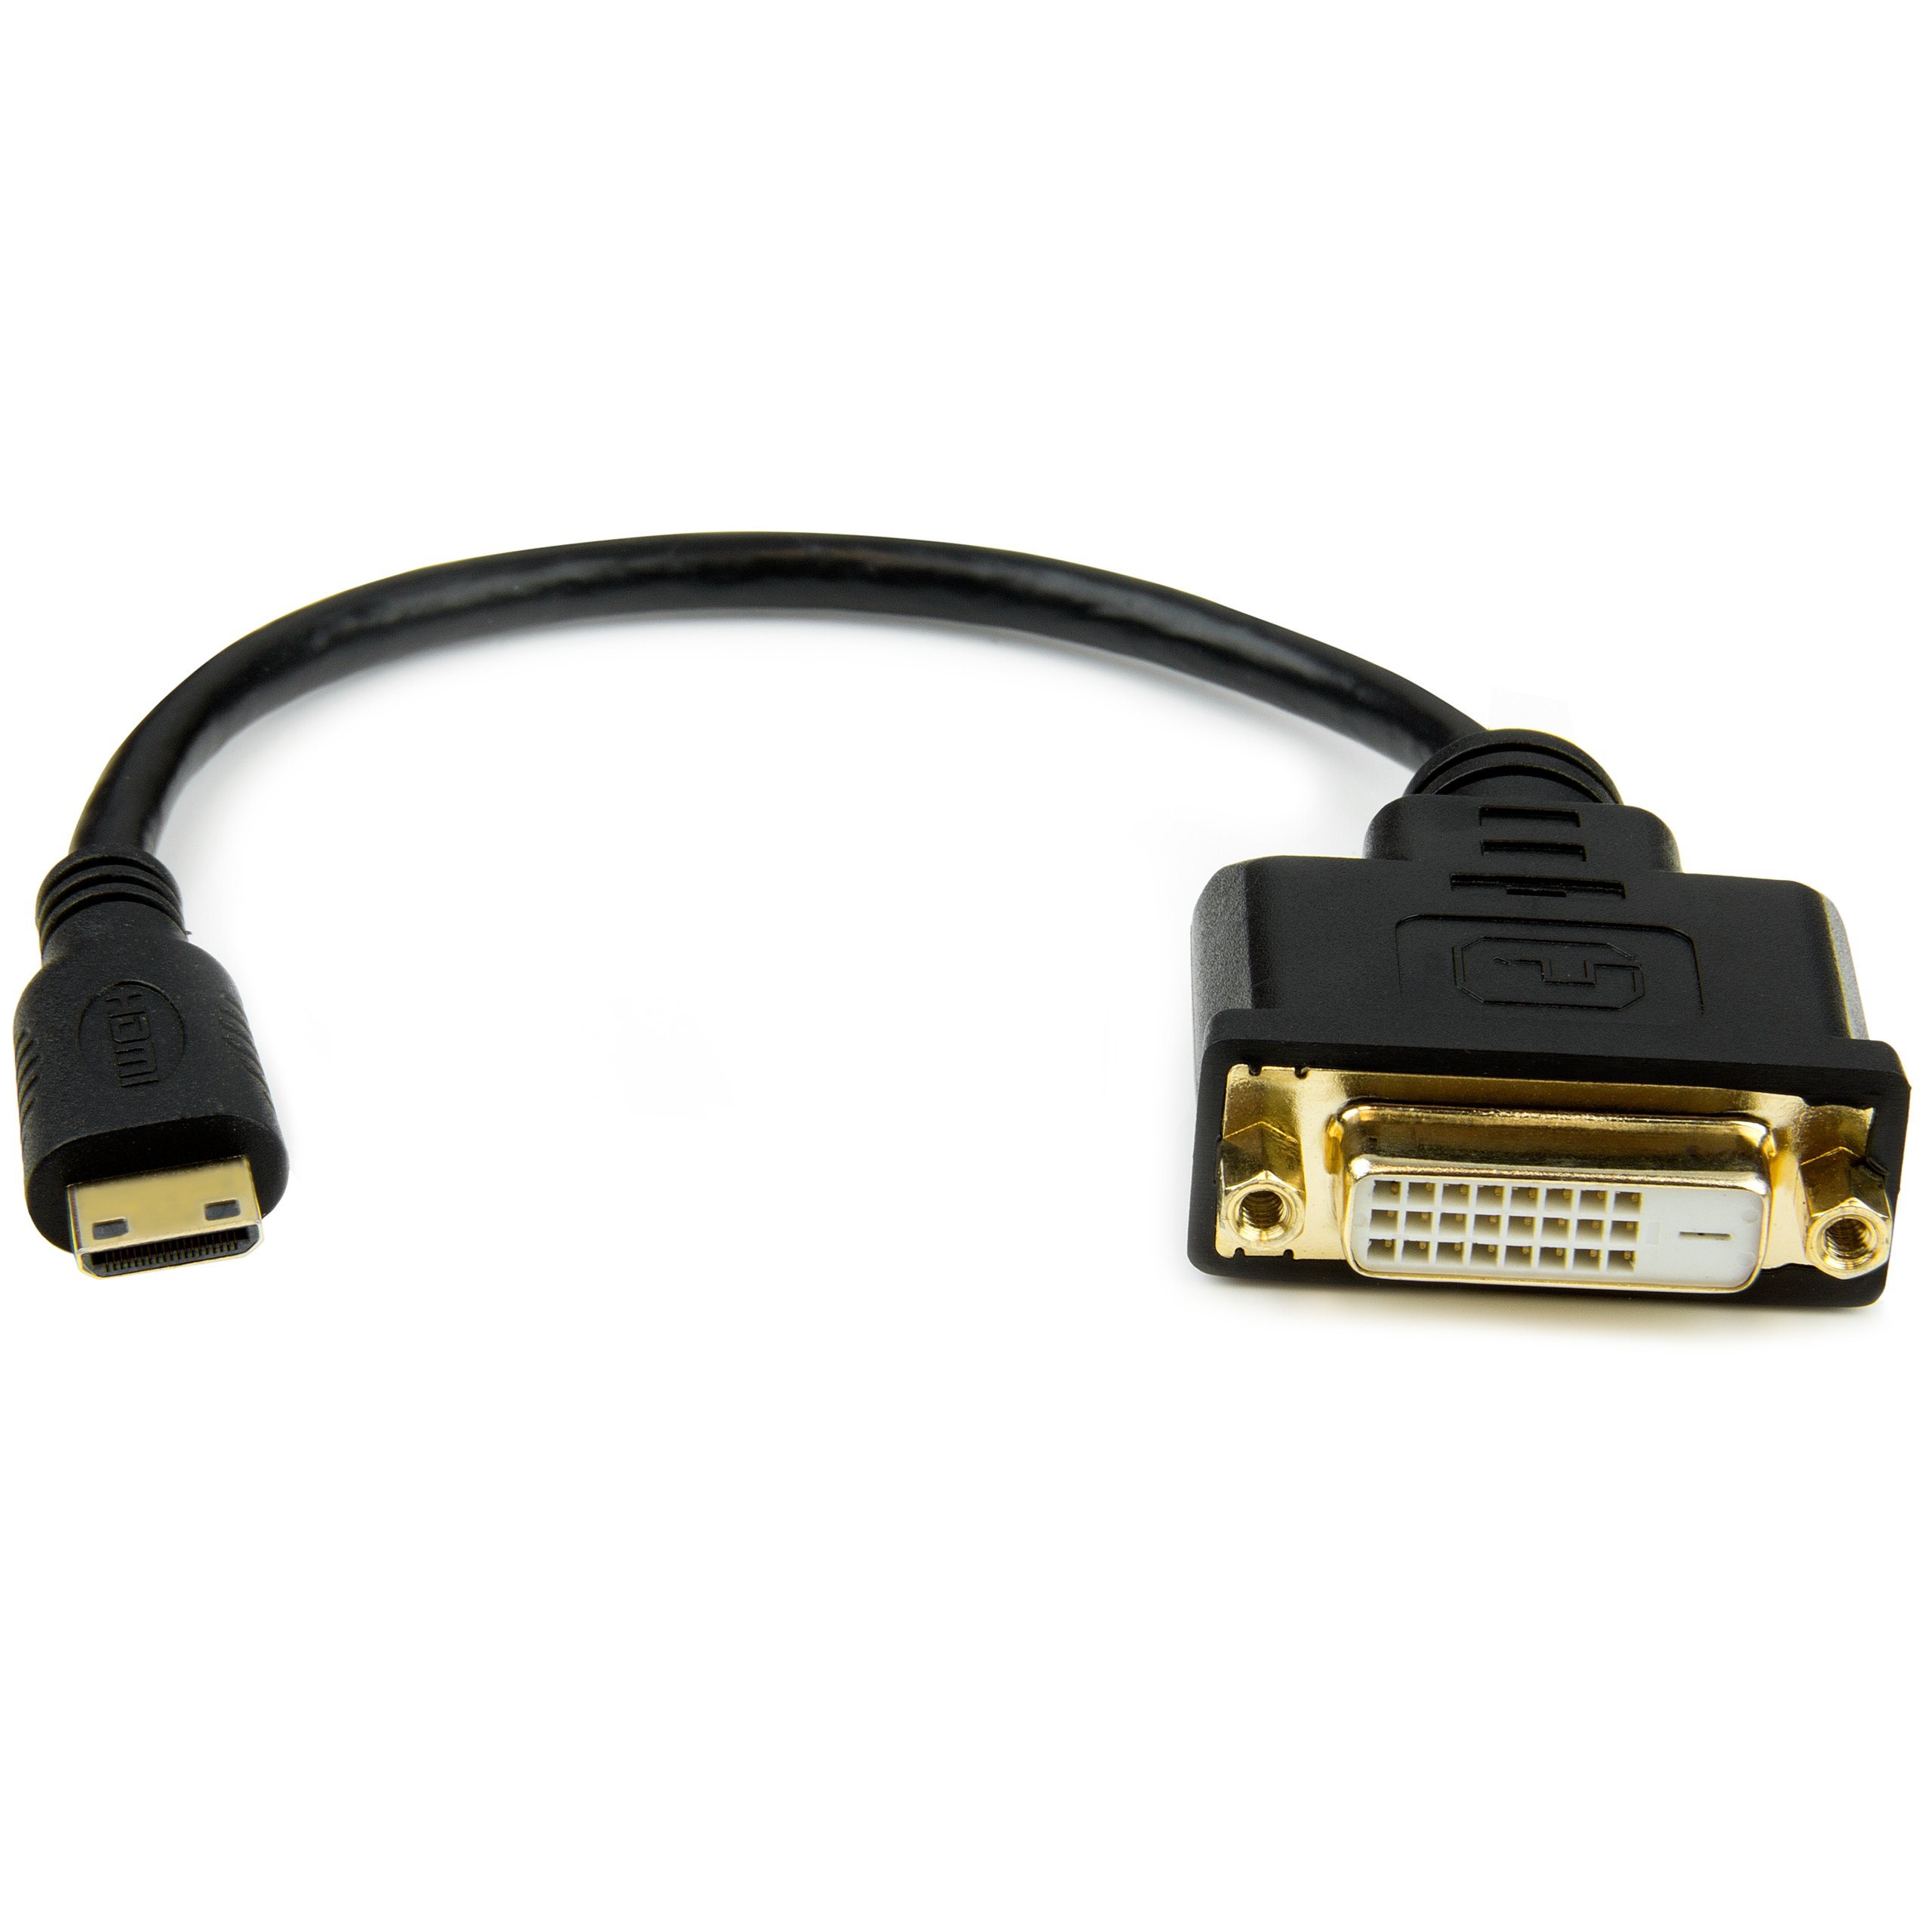 hdmi to serial video adapter